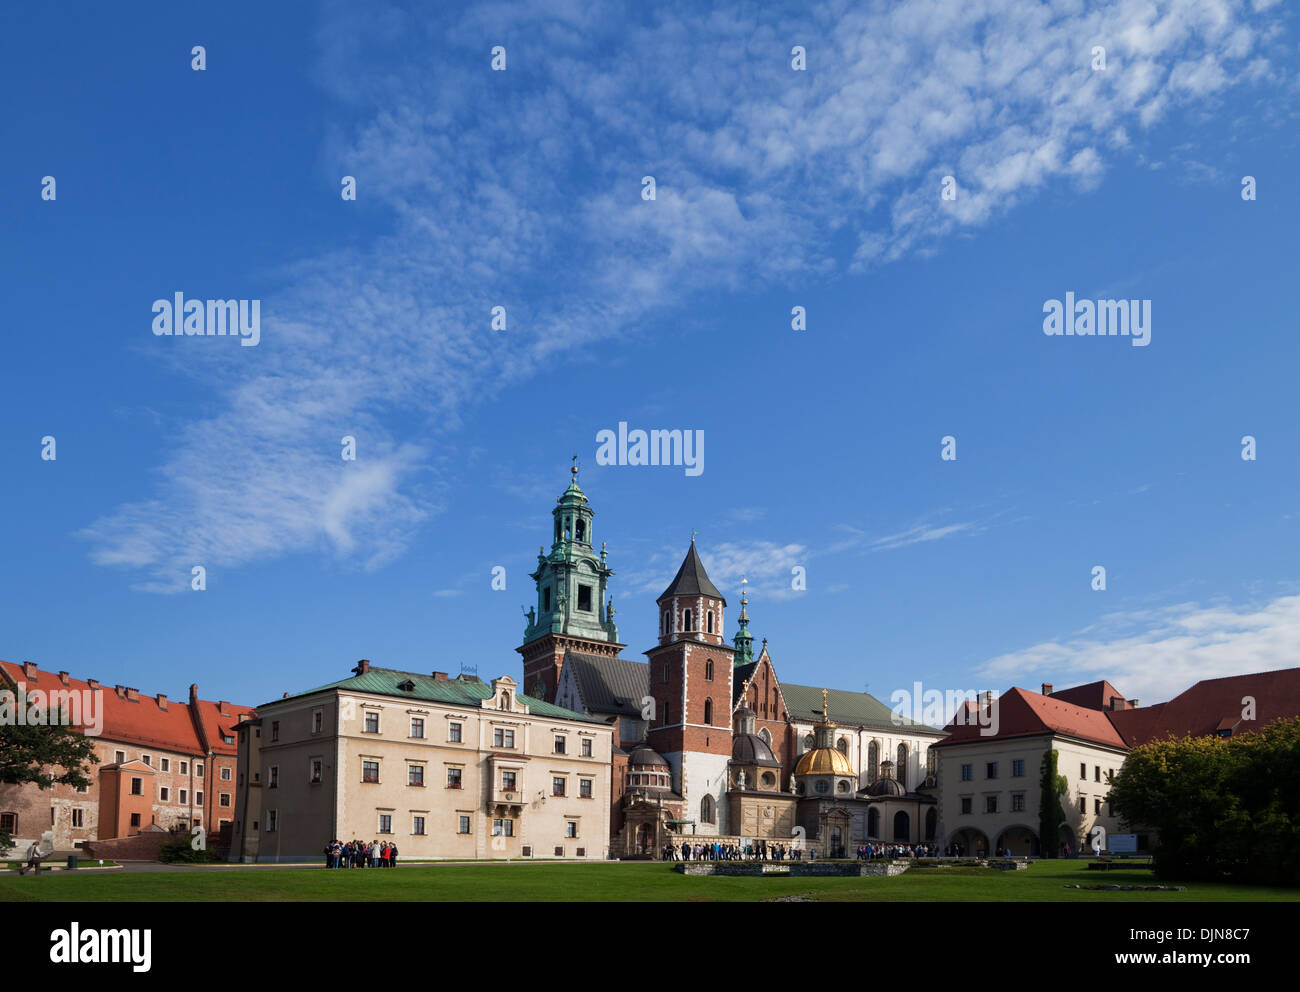 Tourist groups in the grounds of the 11th Century Royal Castle, Wawel Hill, Krakow, Poland - Stock Image